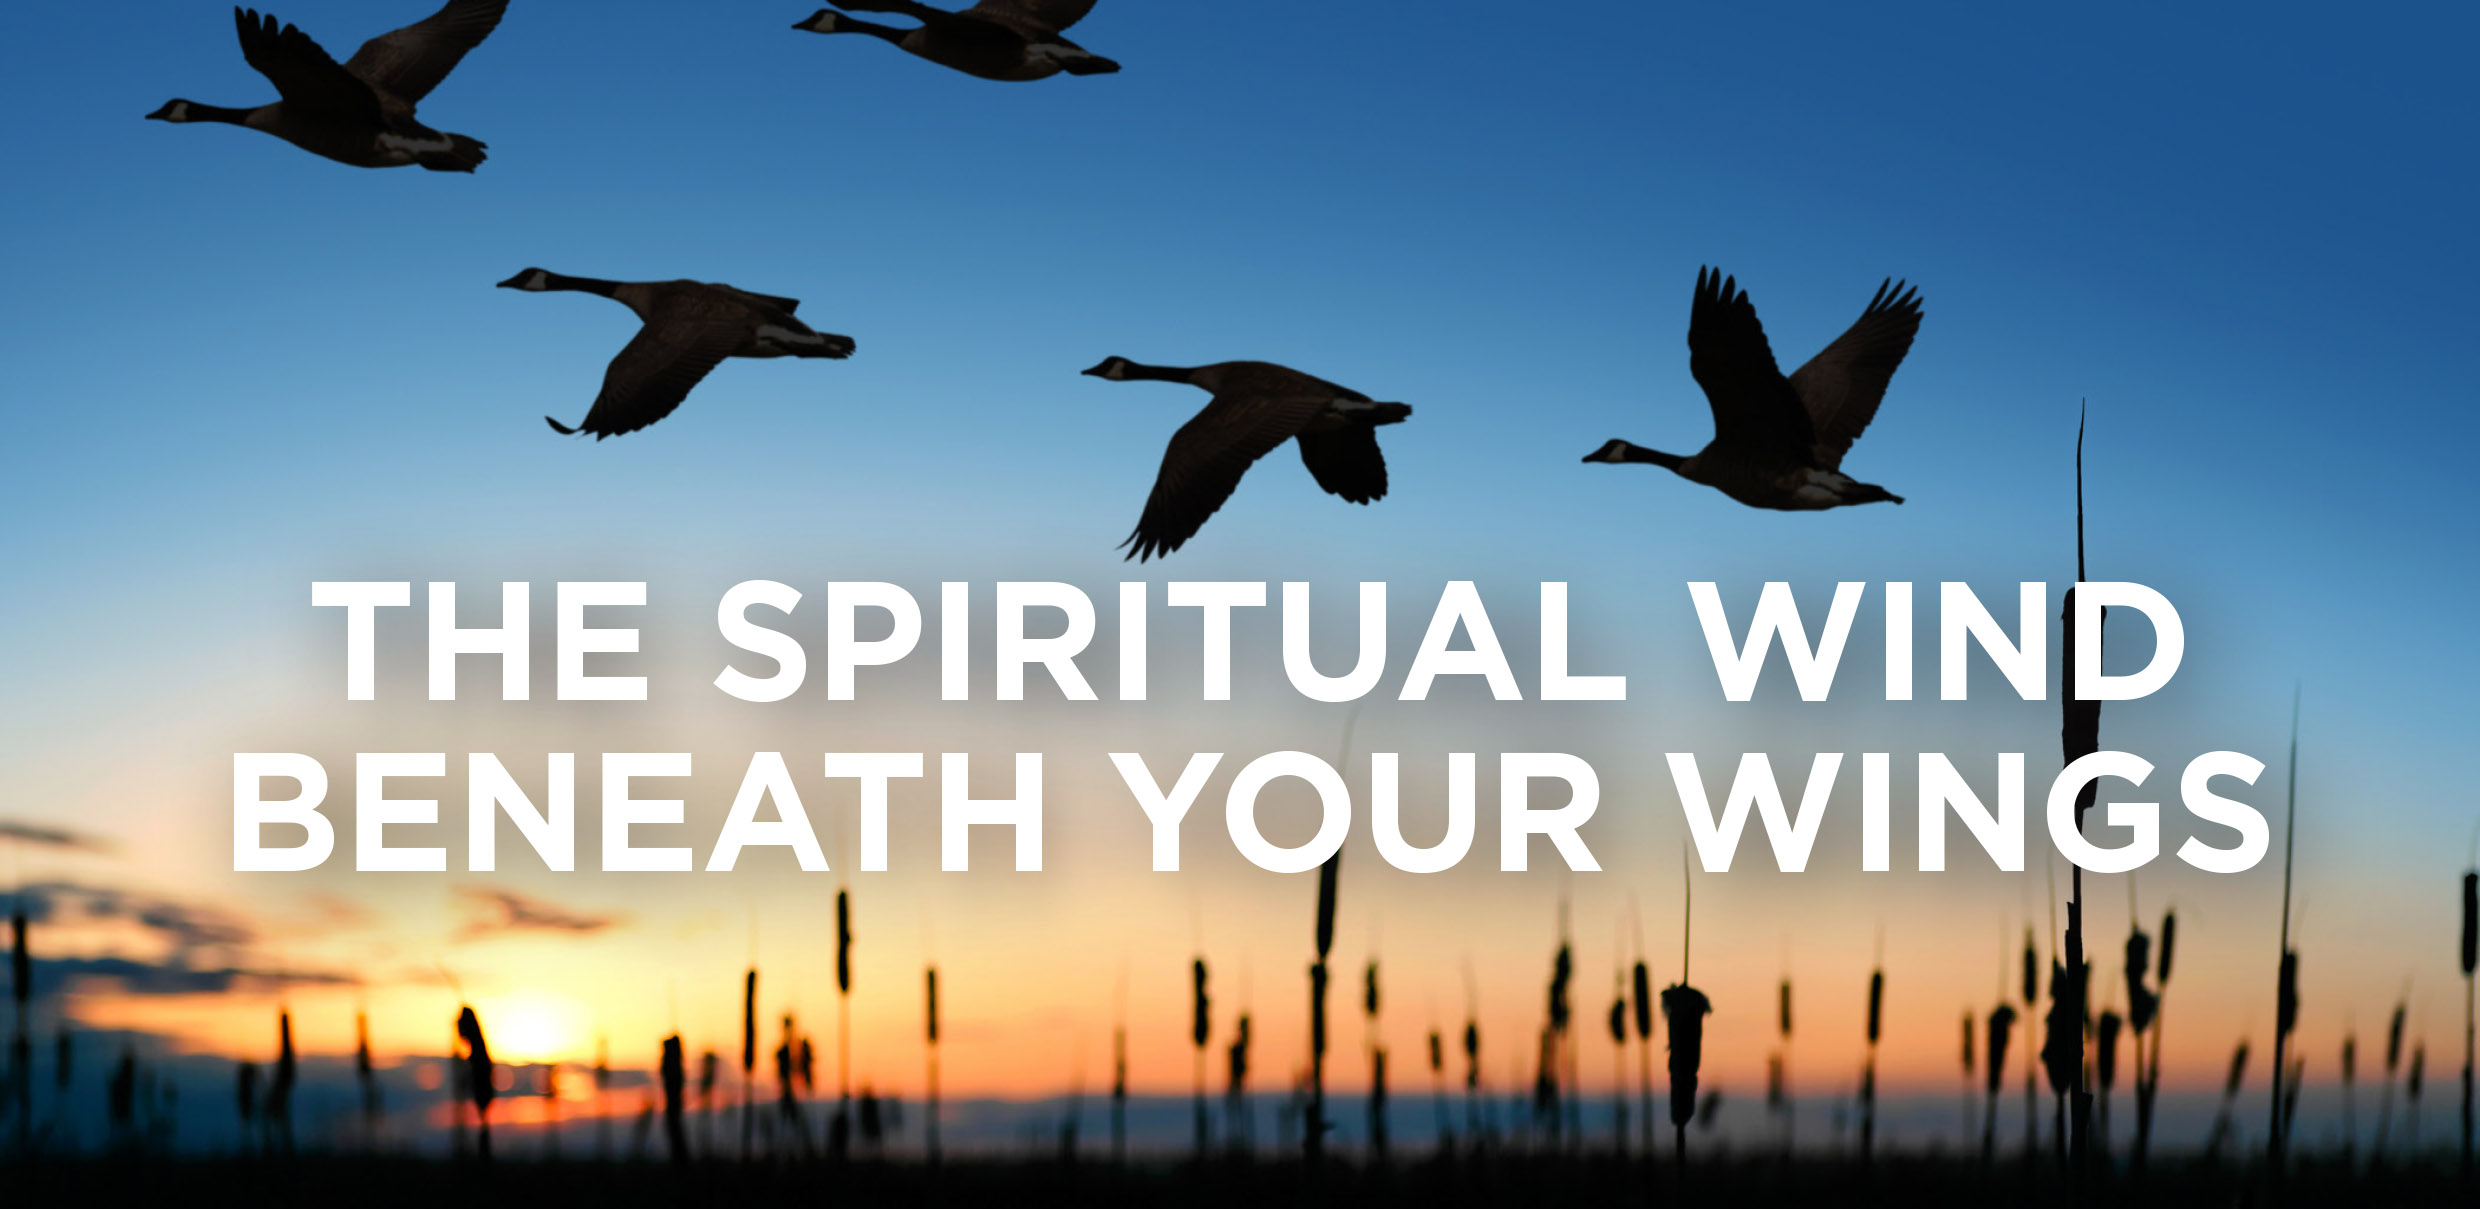 The Spiritual Wind Beneath Your Wings